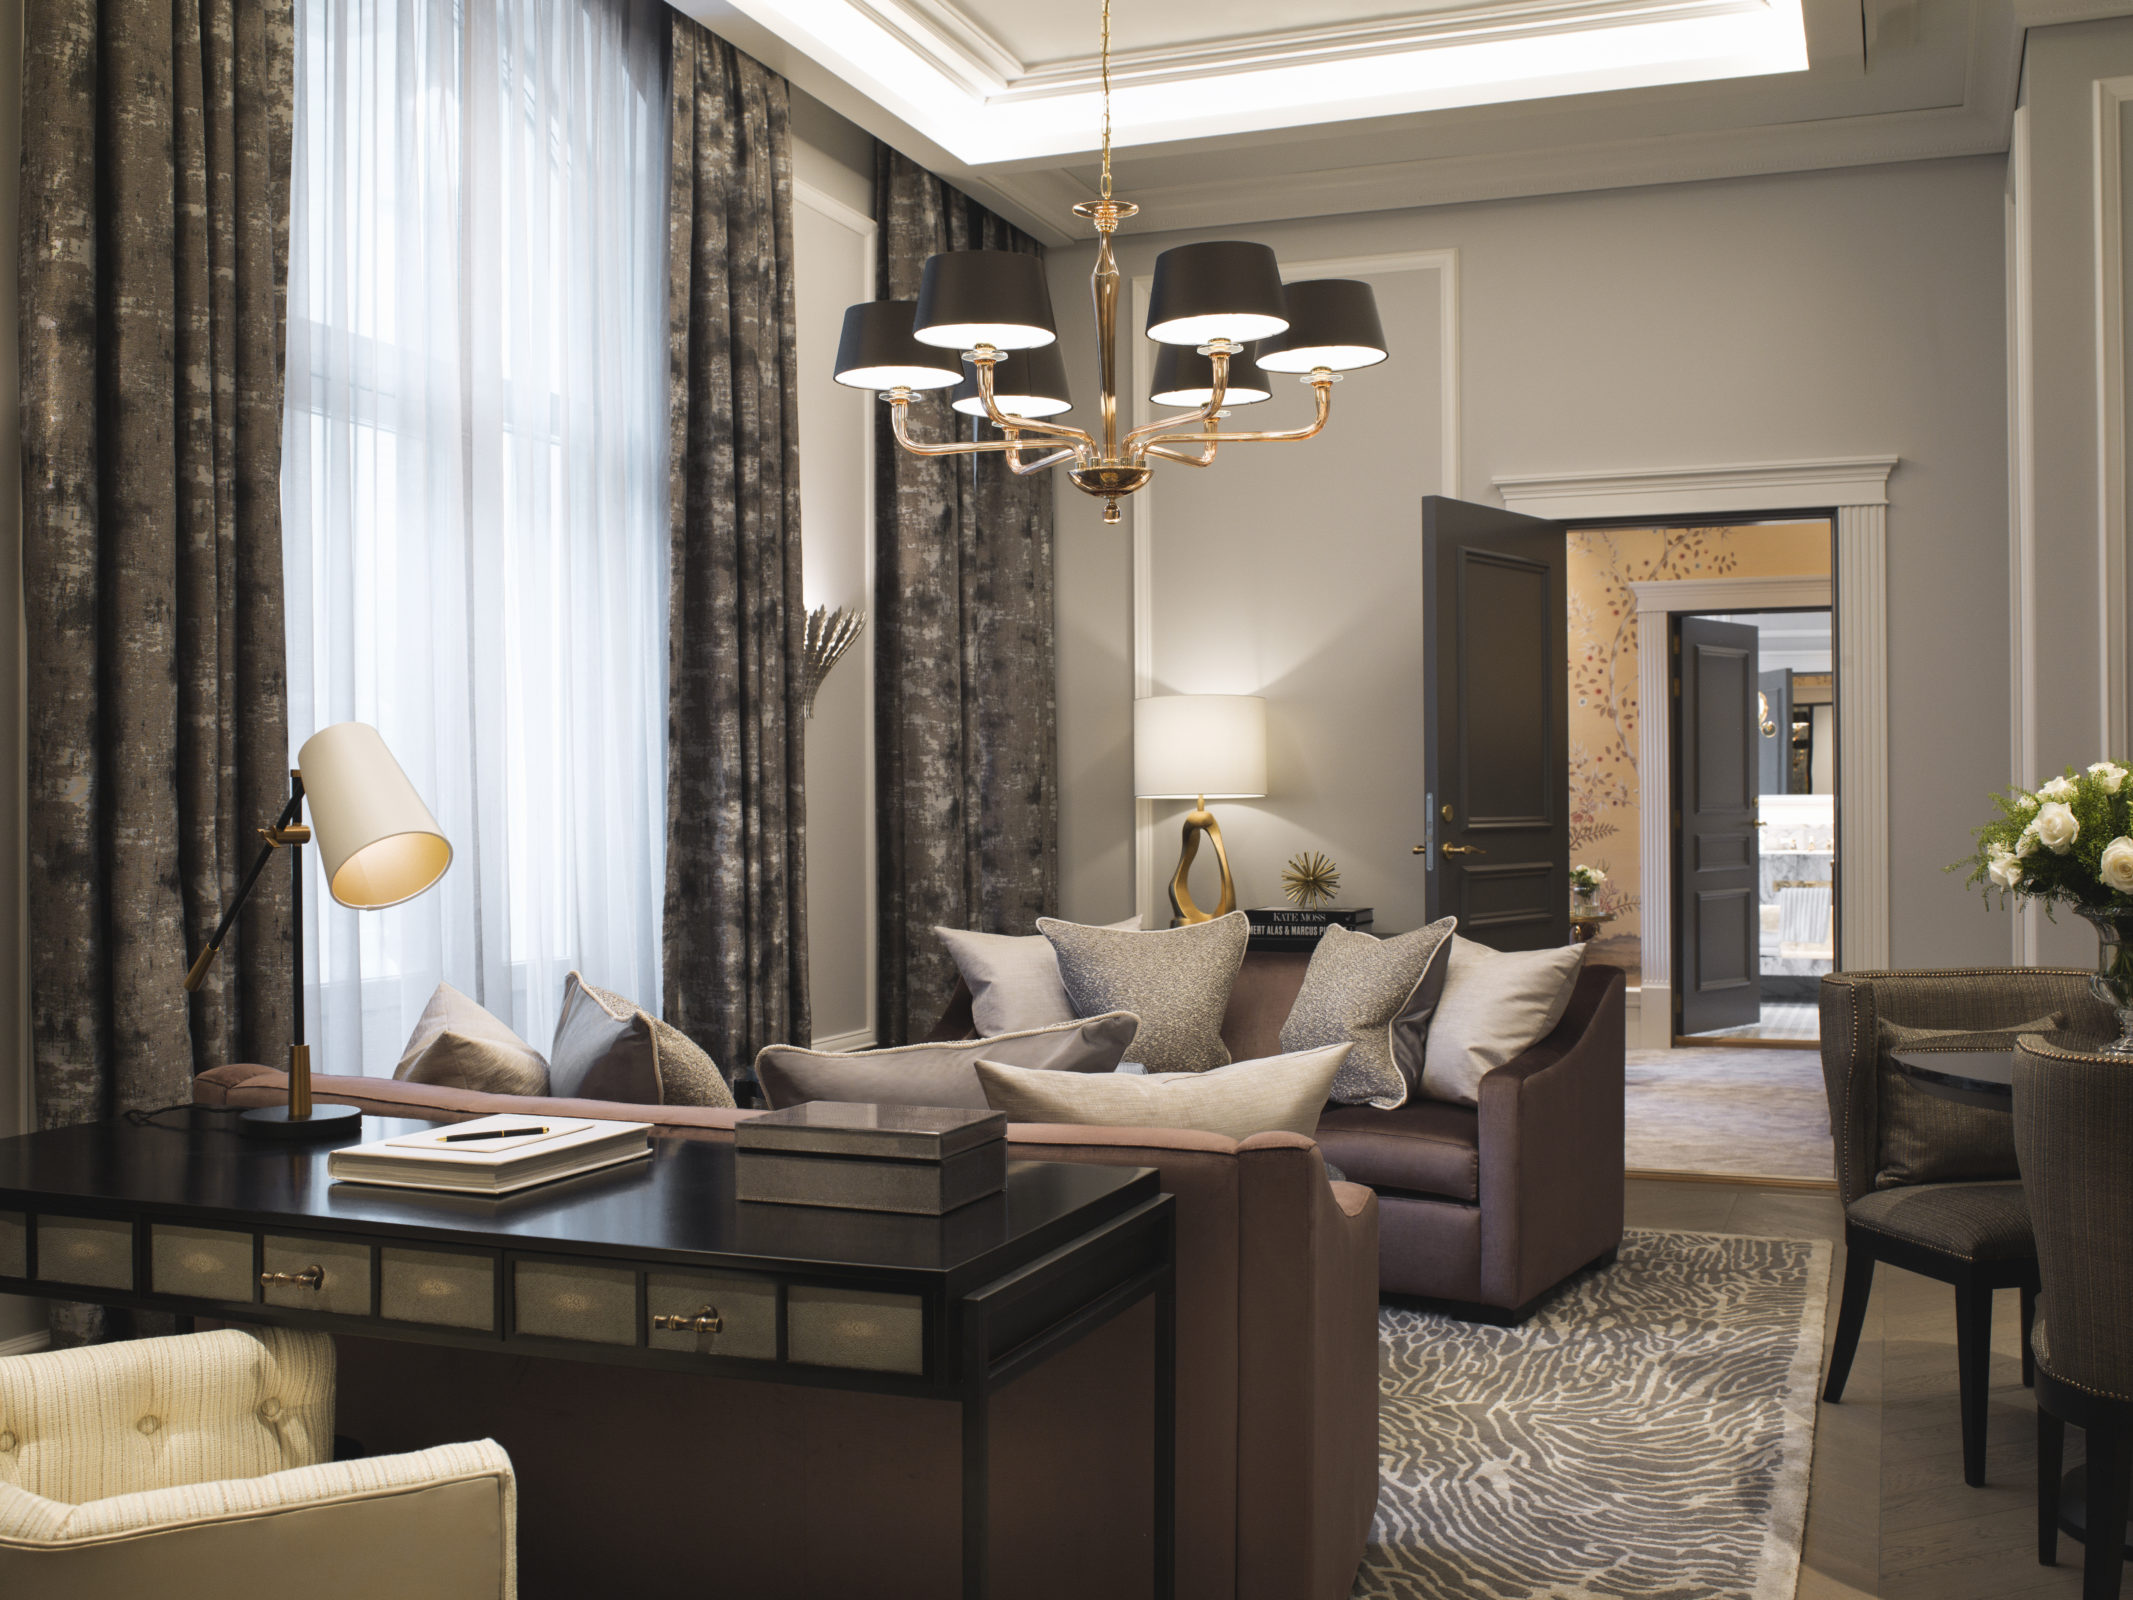 Britannia Hotel in Trondheim's Signature Suite styled by Metropolis Interior Architects. Living room and entertainment area, with bedroom and bathroom in the background